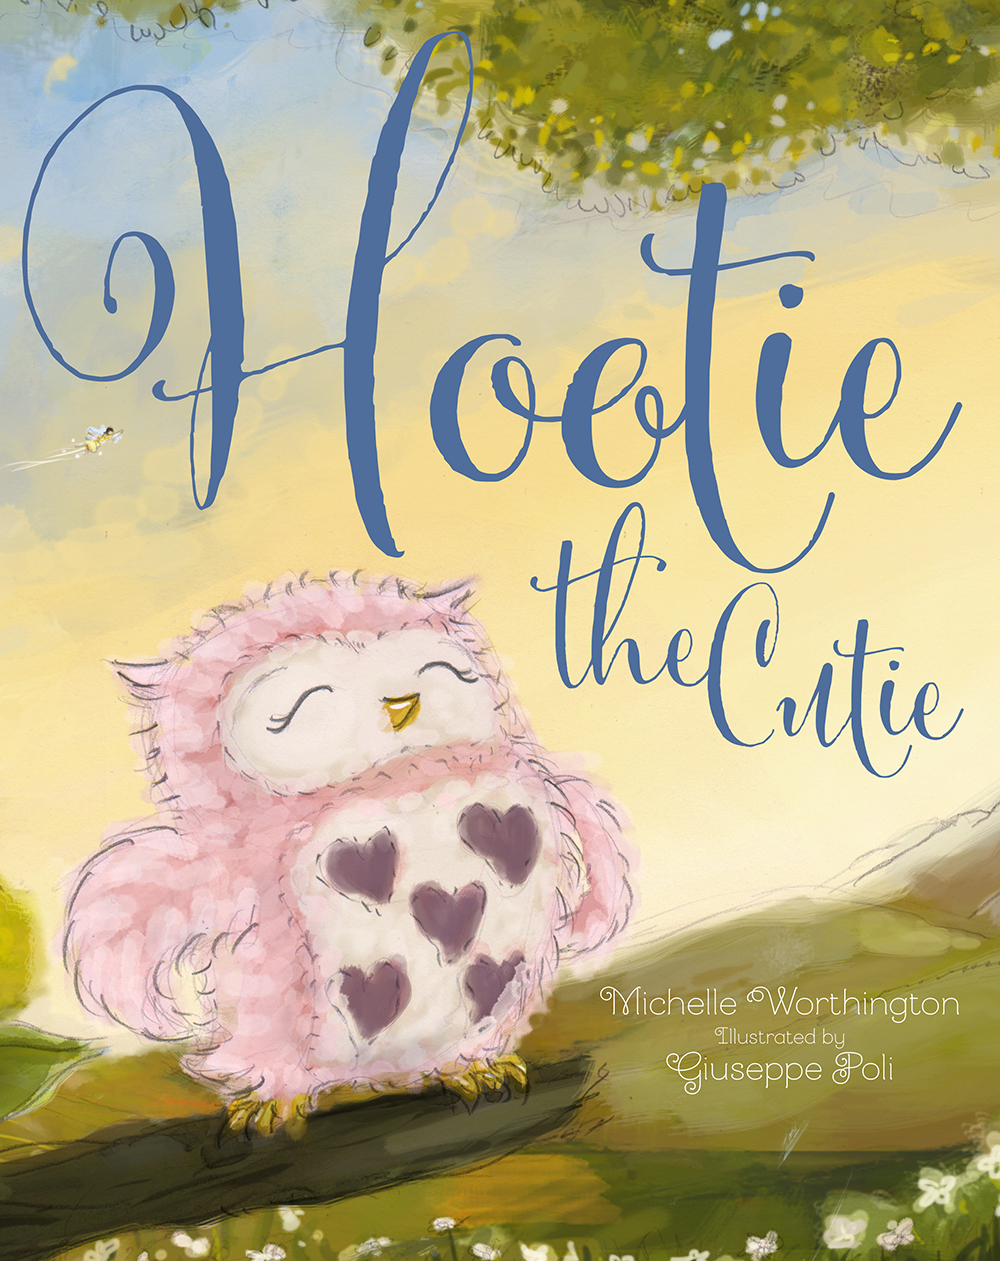 Hootie-the-Cutie-book-cover.jpg